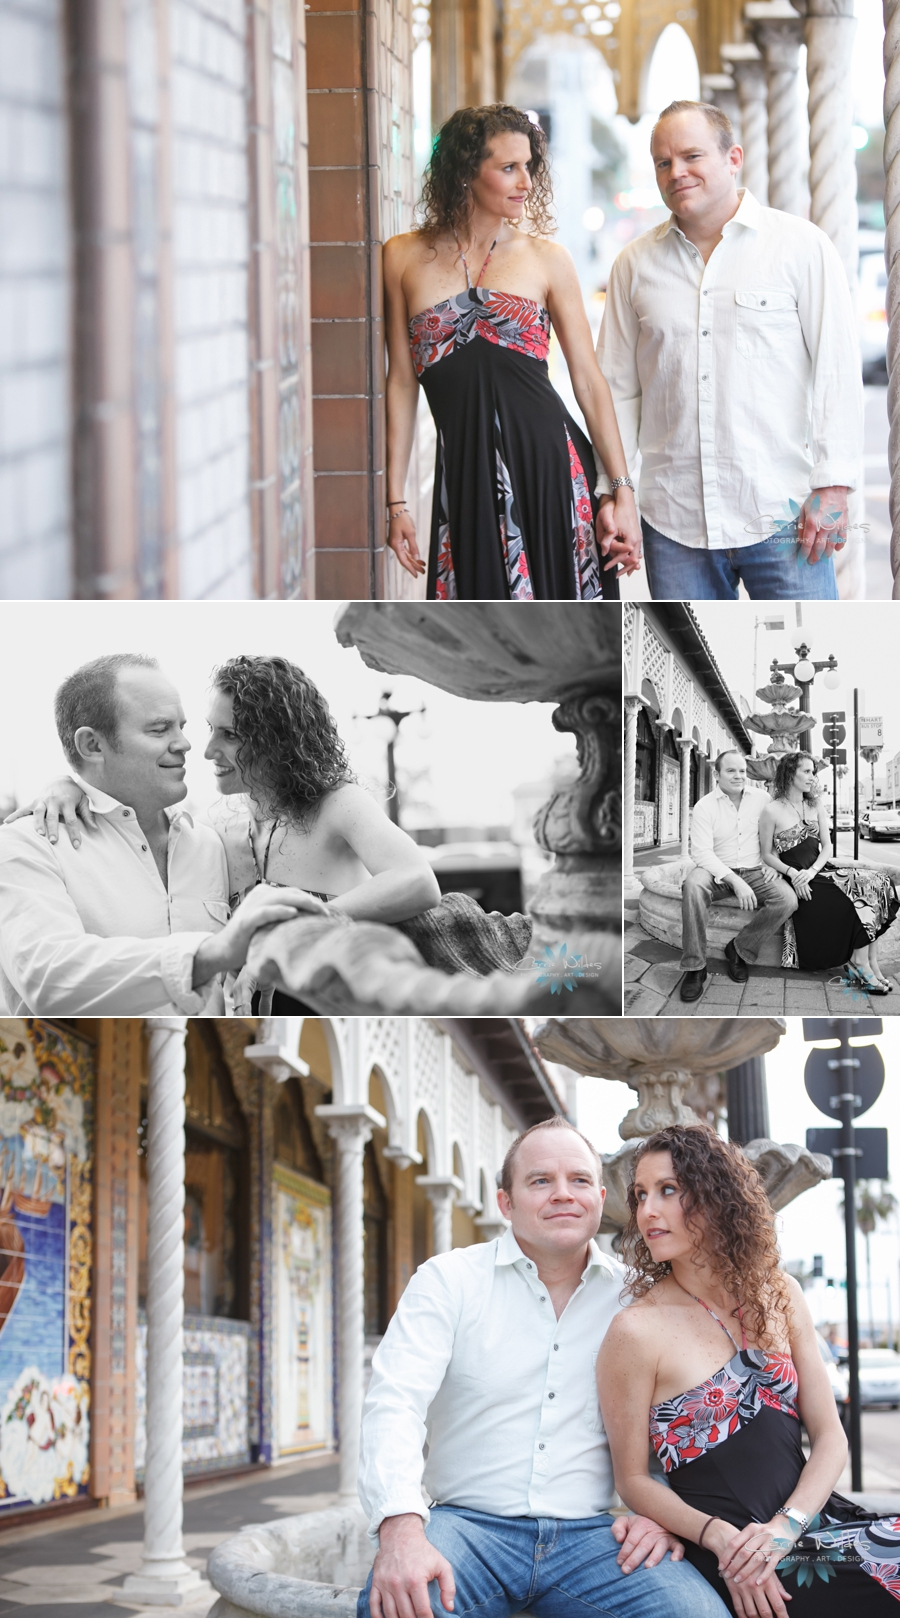 3_29_13 Ybor City Tampa Engagement Session_0001.jpg